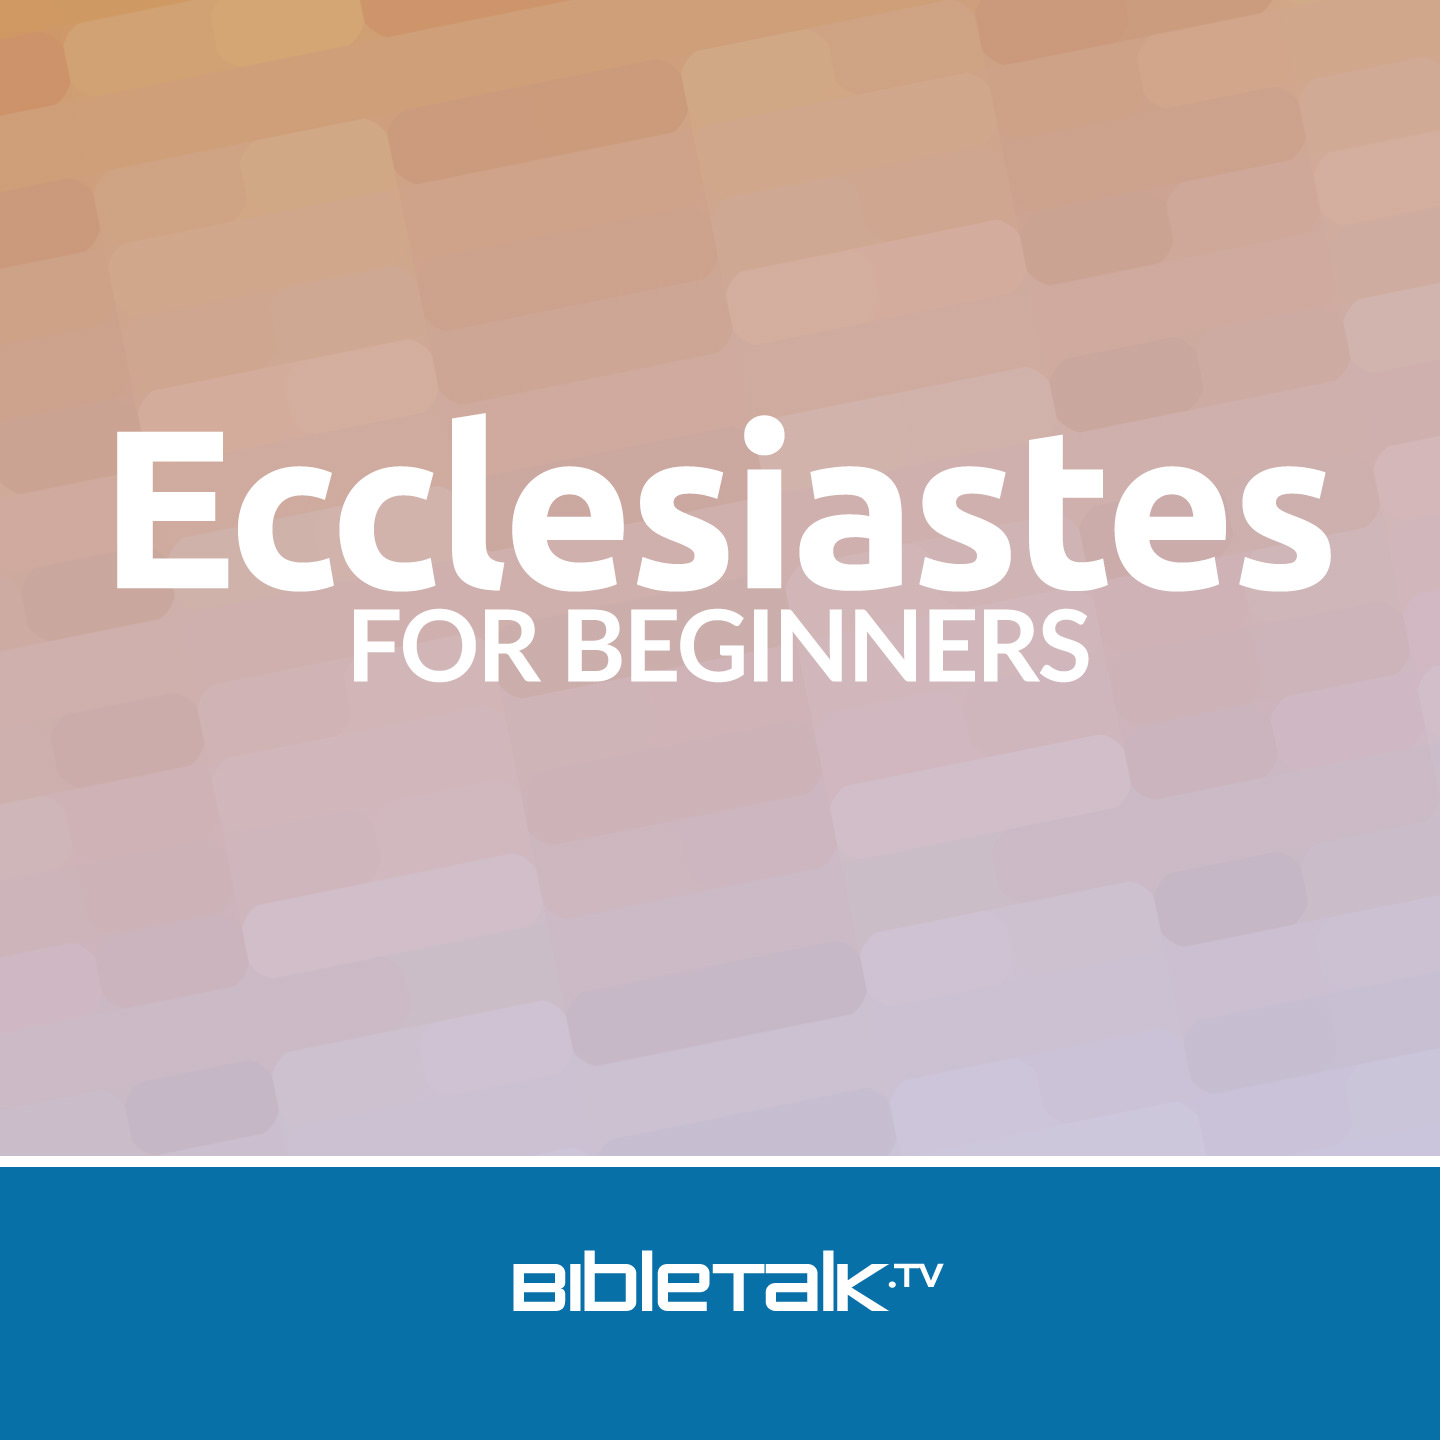 Ecclesiastes for Beginners | BibleTalk tv